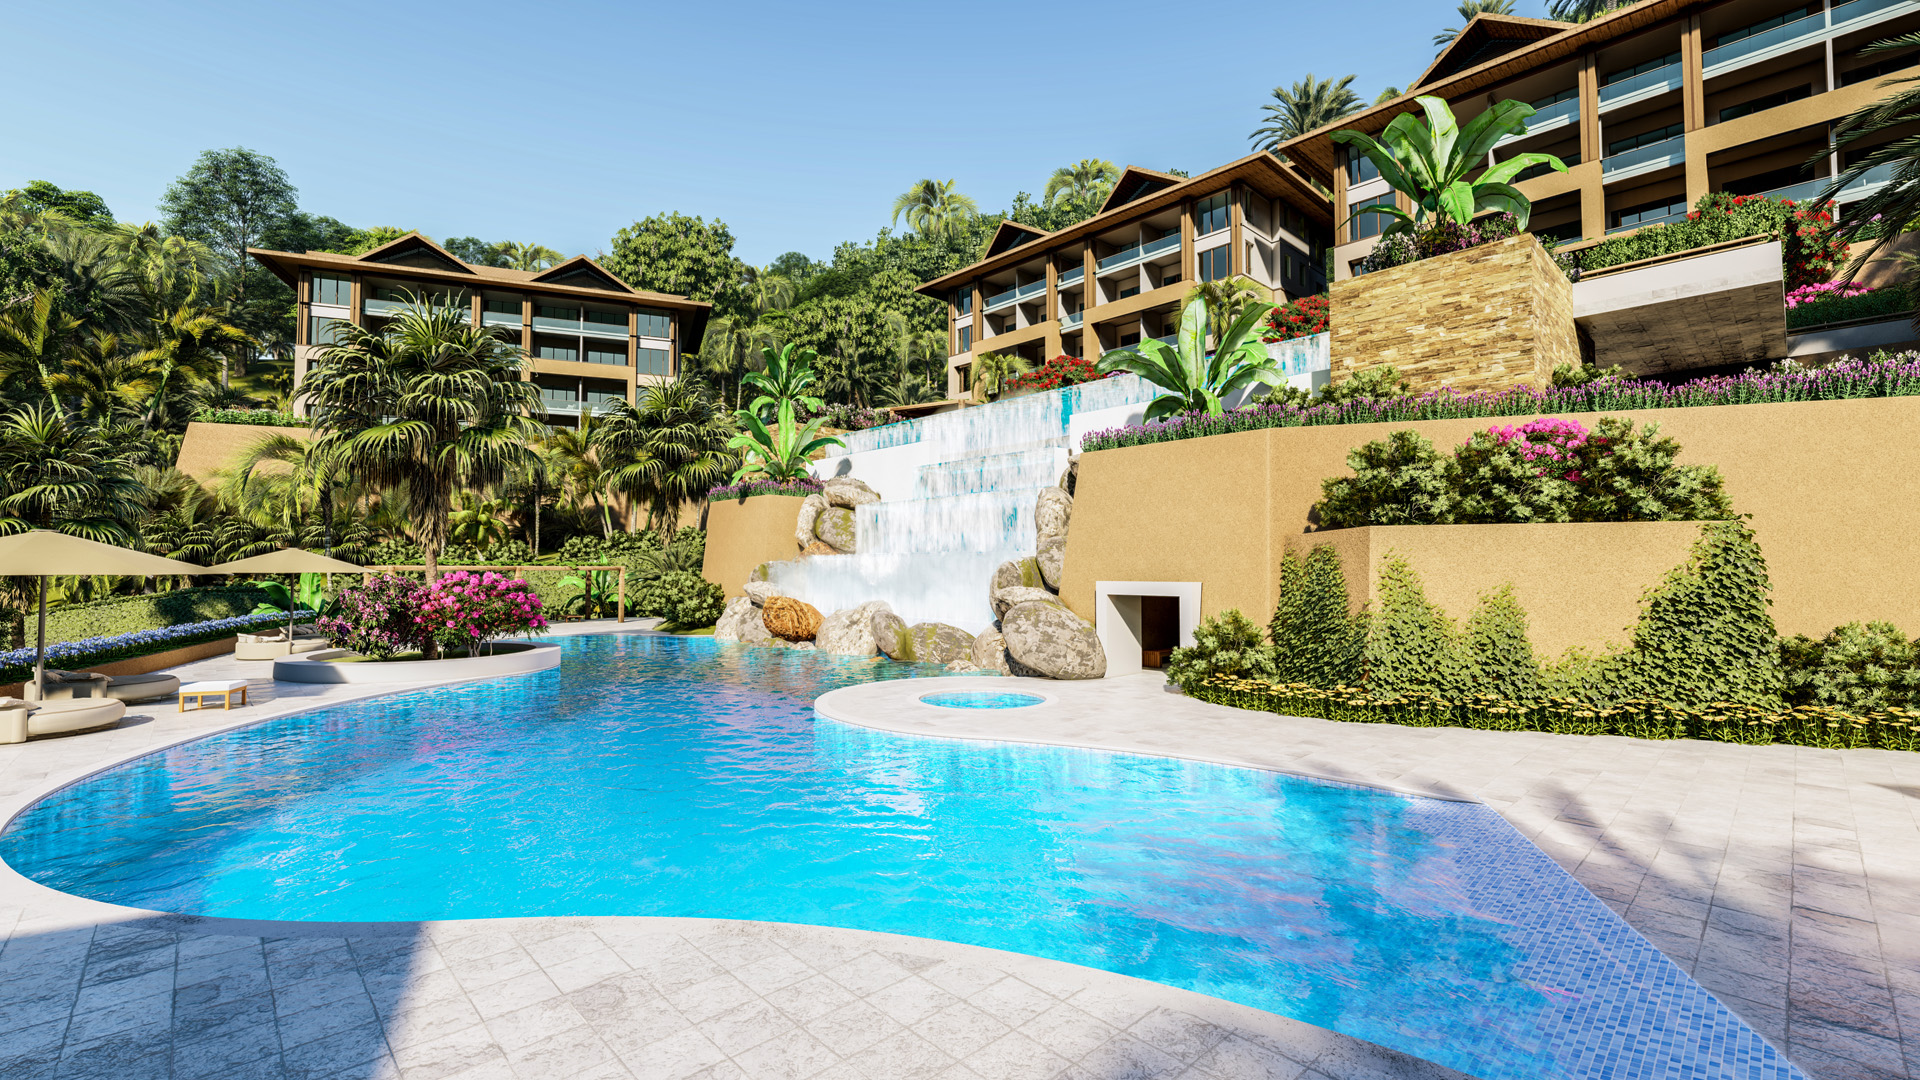 hacienda-samana-bay-pool-featured-b1-hotel